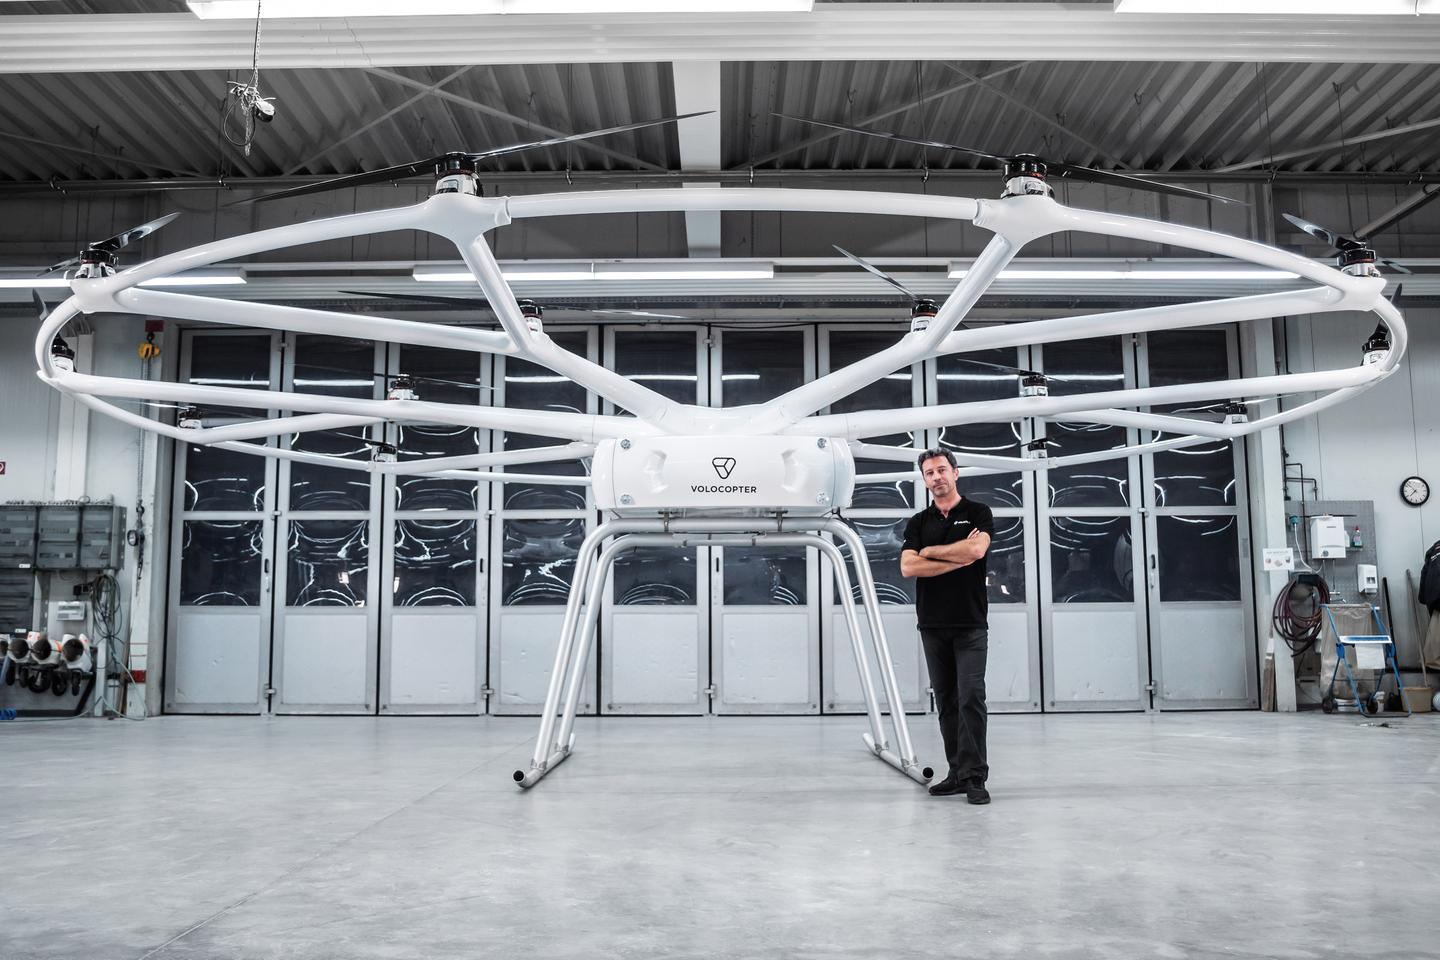 Volocopter has spent years developing aircraft to hoist people up and over congested cities, and now its leveraging its technology to do the same for heavy cargo